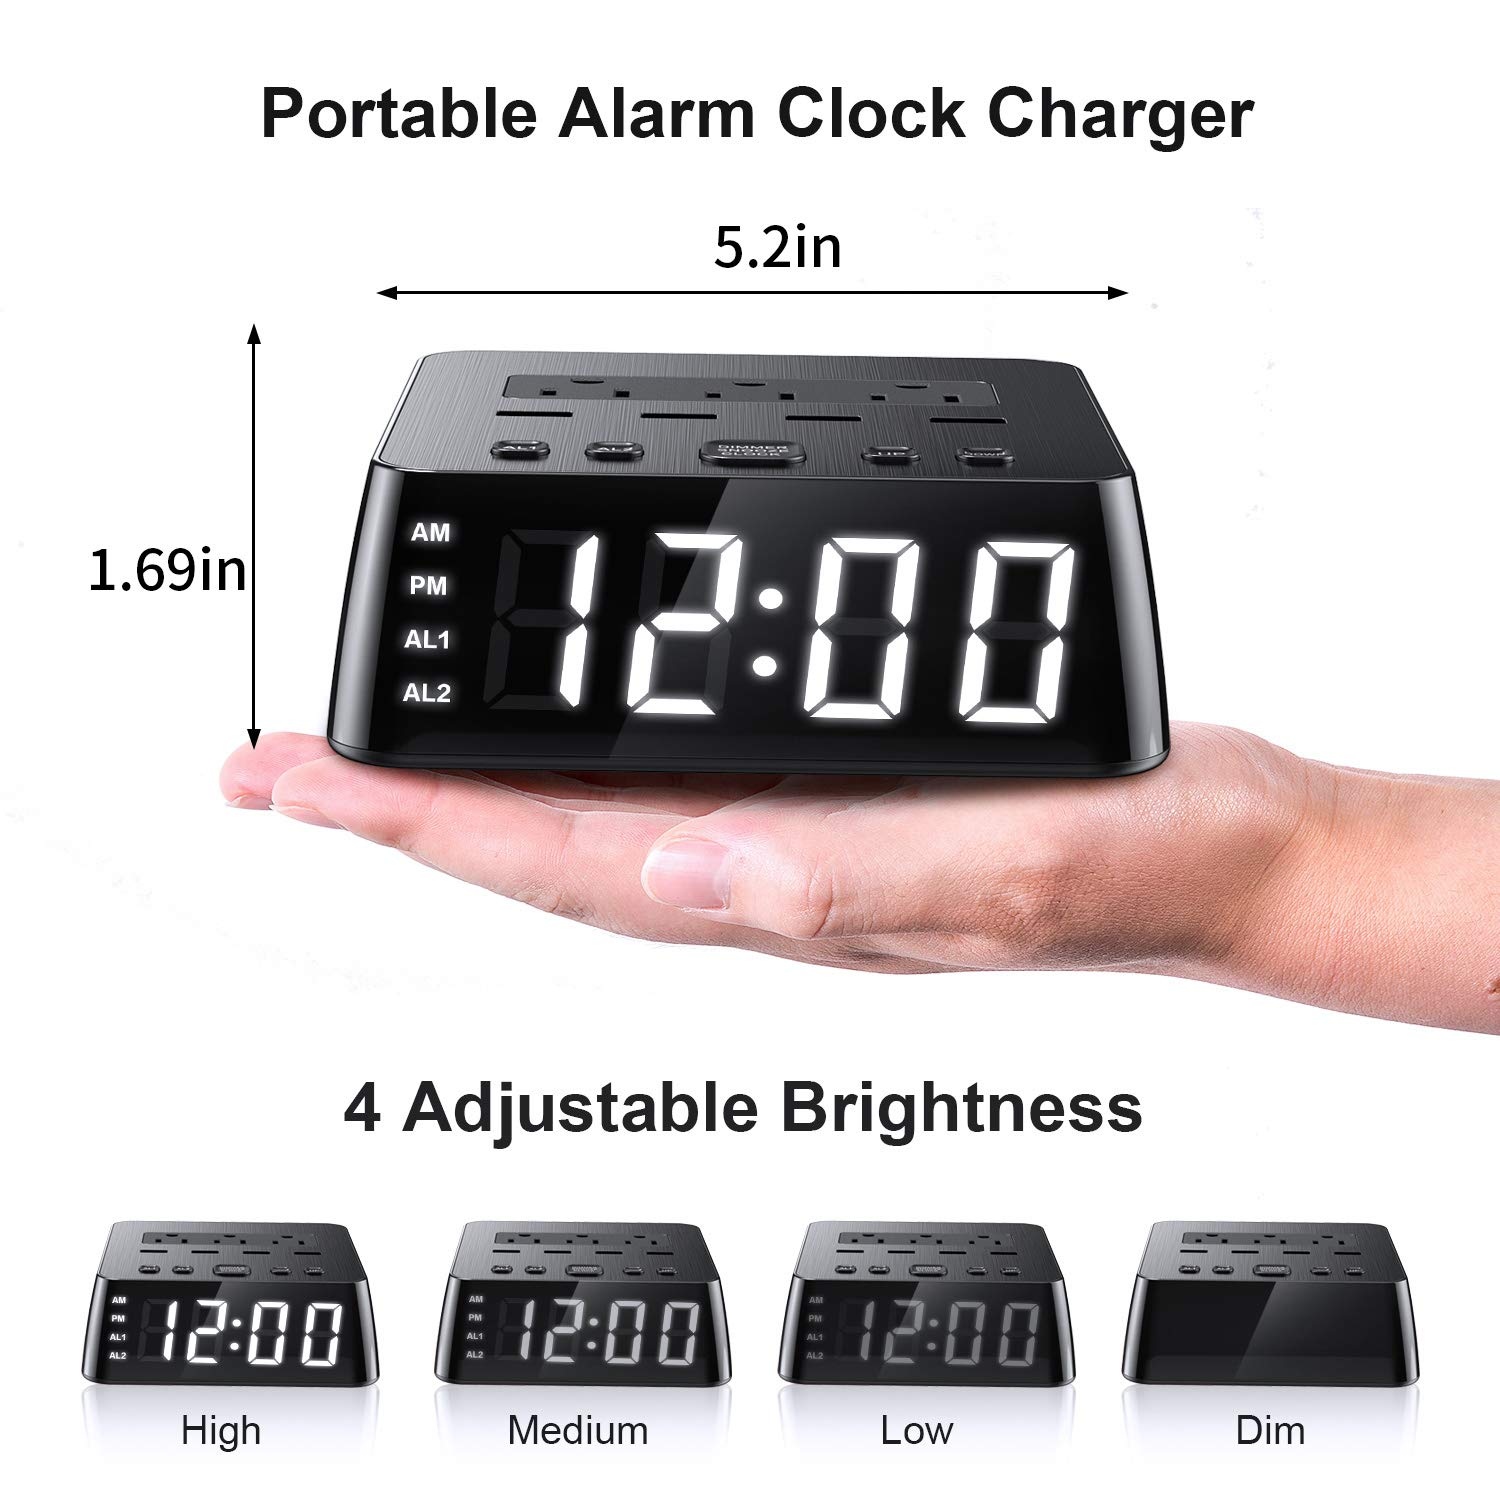 Yostyle Alarm Clock Charger w/4 USB Ports & 3 AC Outlets, 6ft Power Cord Charging Station Power Strip for Hotel Home,UL Tested (Dual Alarm,4 Dimmer Brightness,Snooze,ON/Off Switch,Battery Backup)